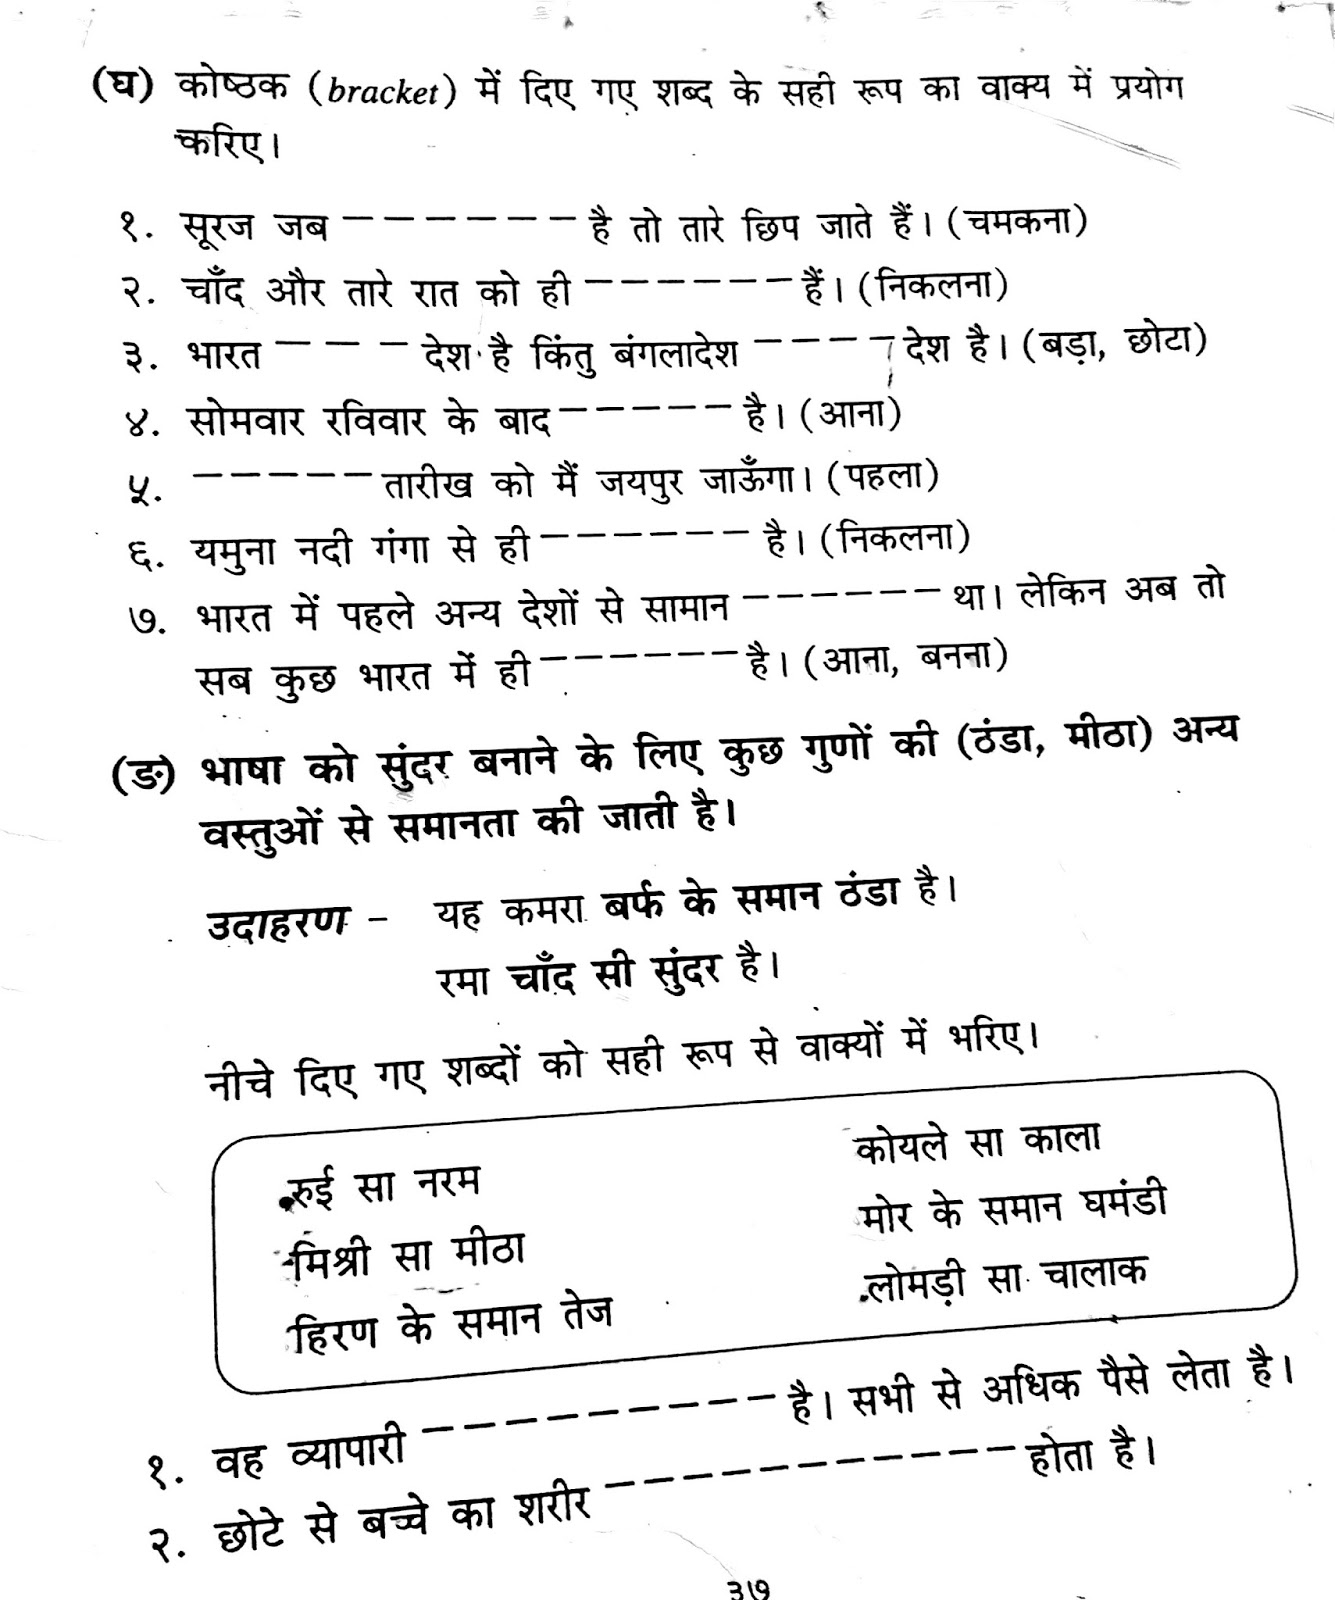 Hindi Grammar Work Sheet Collection For Classes 5 6 7 Amp 8 Writing Skill Cards To Improve